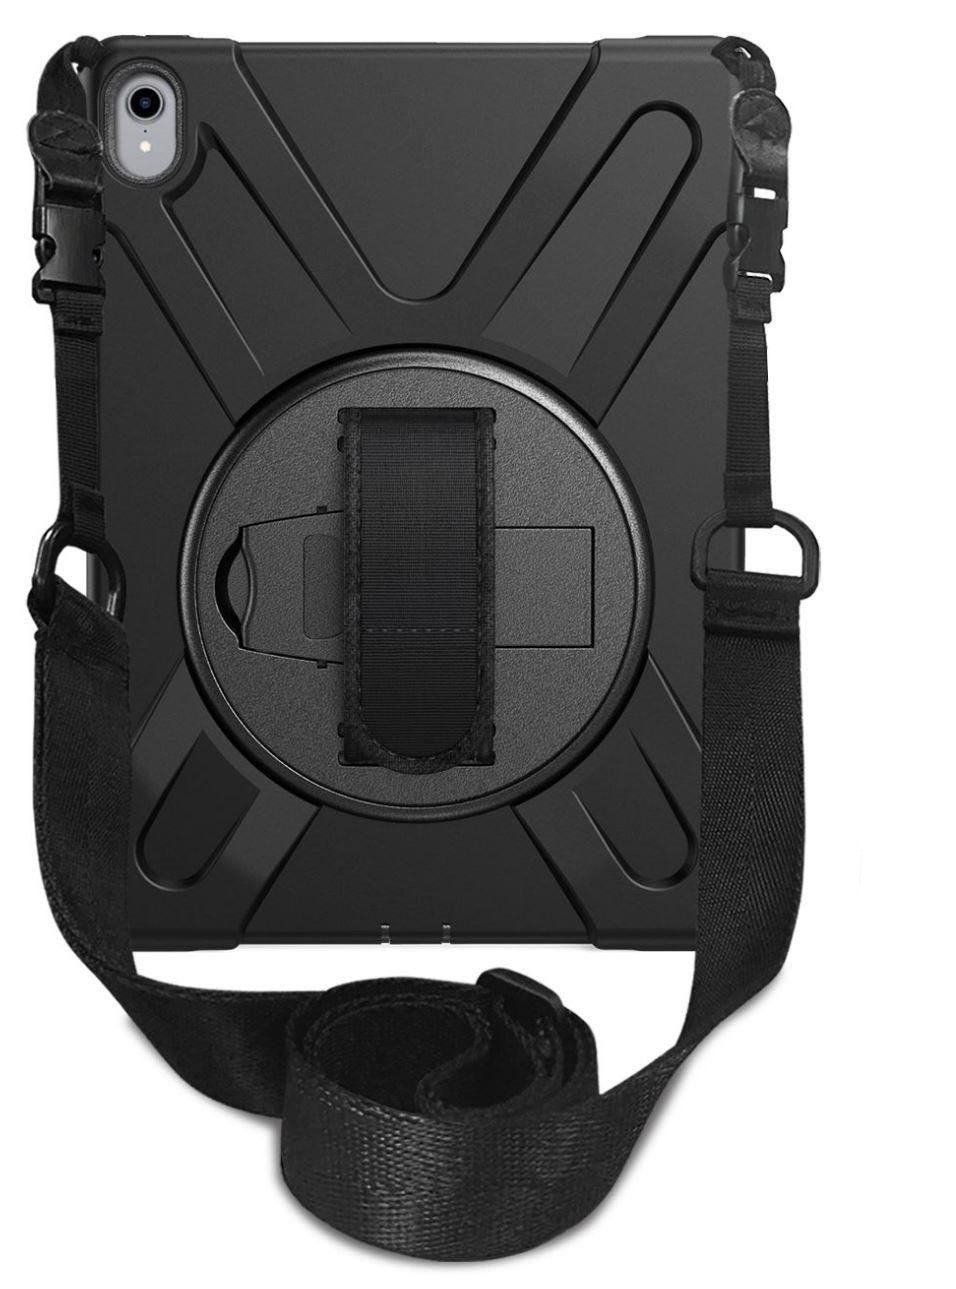 Black-colored protective case for iPad 12.9 with the shoulder strap, rear view